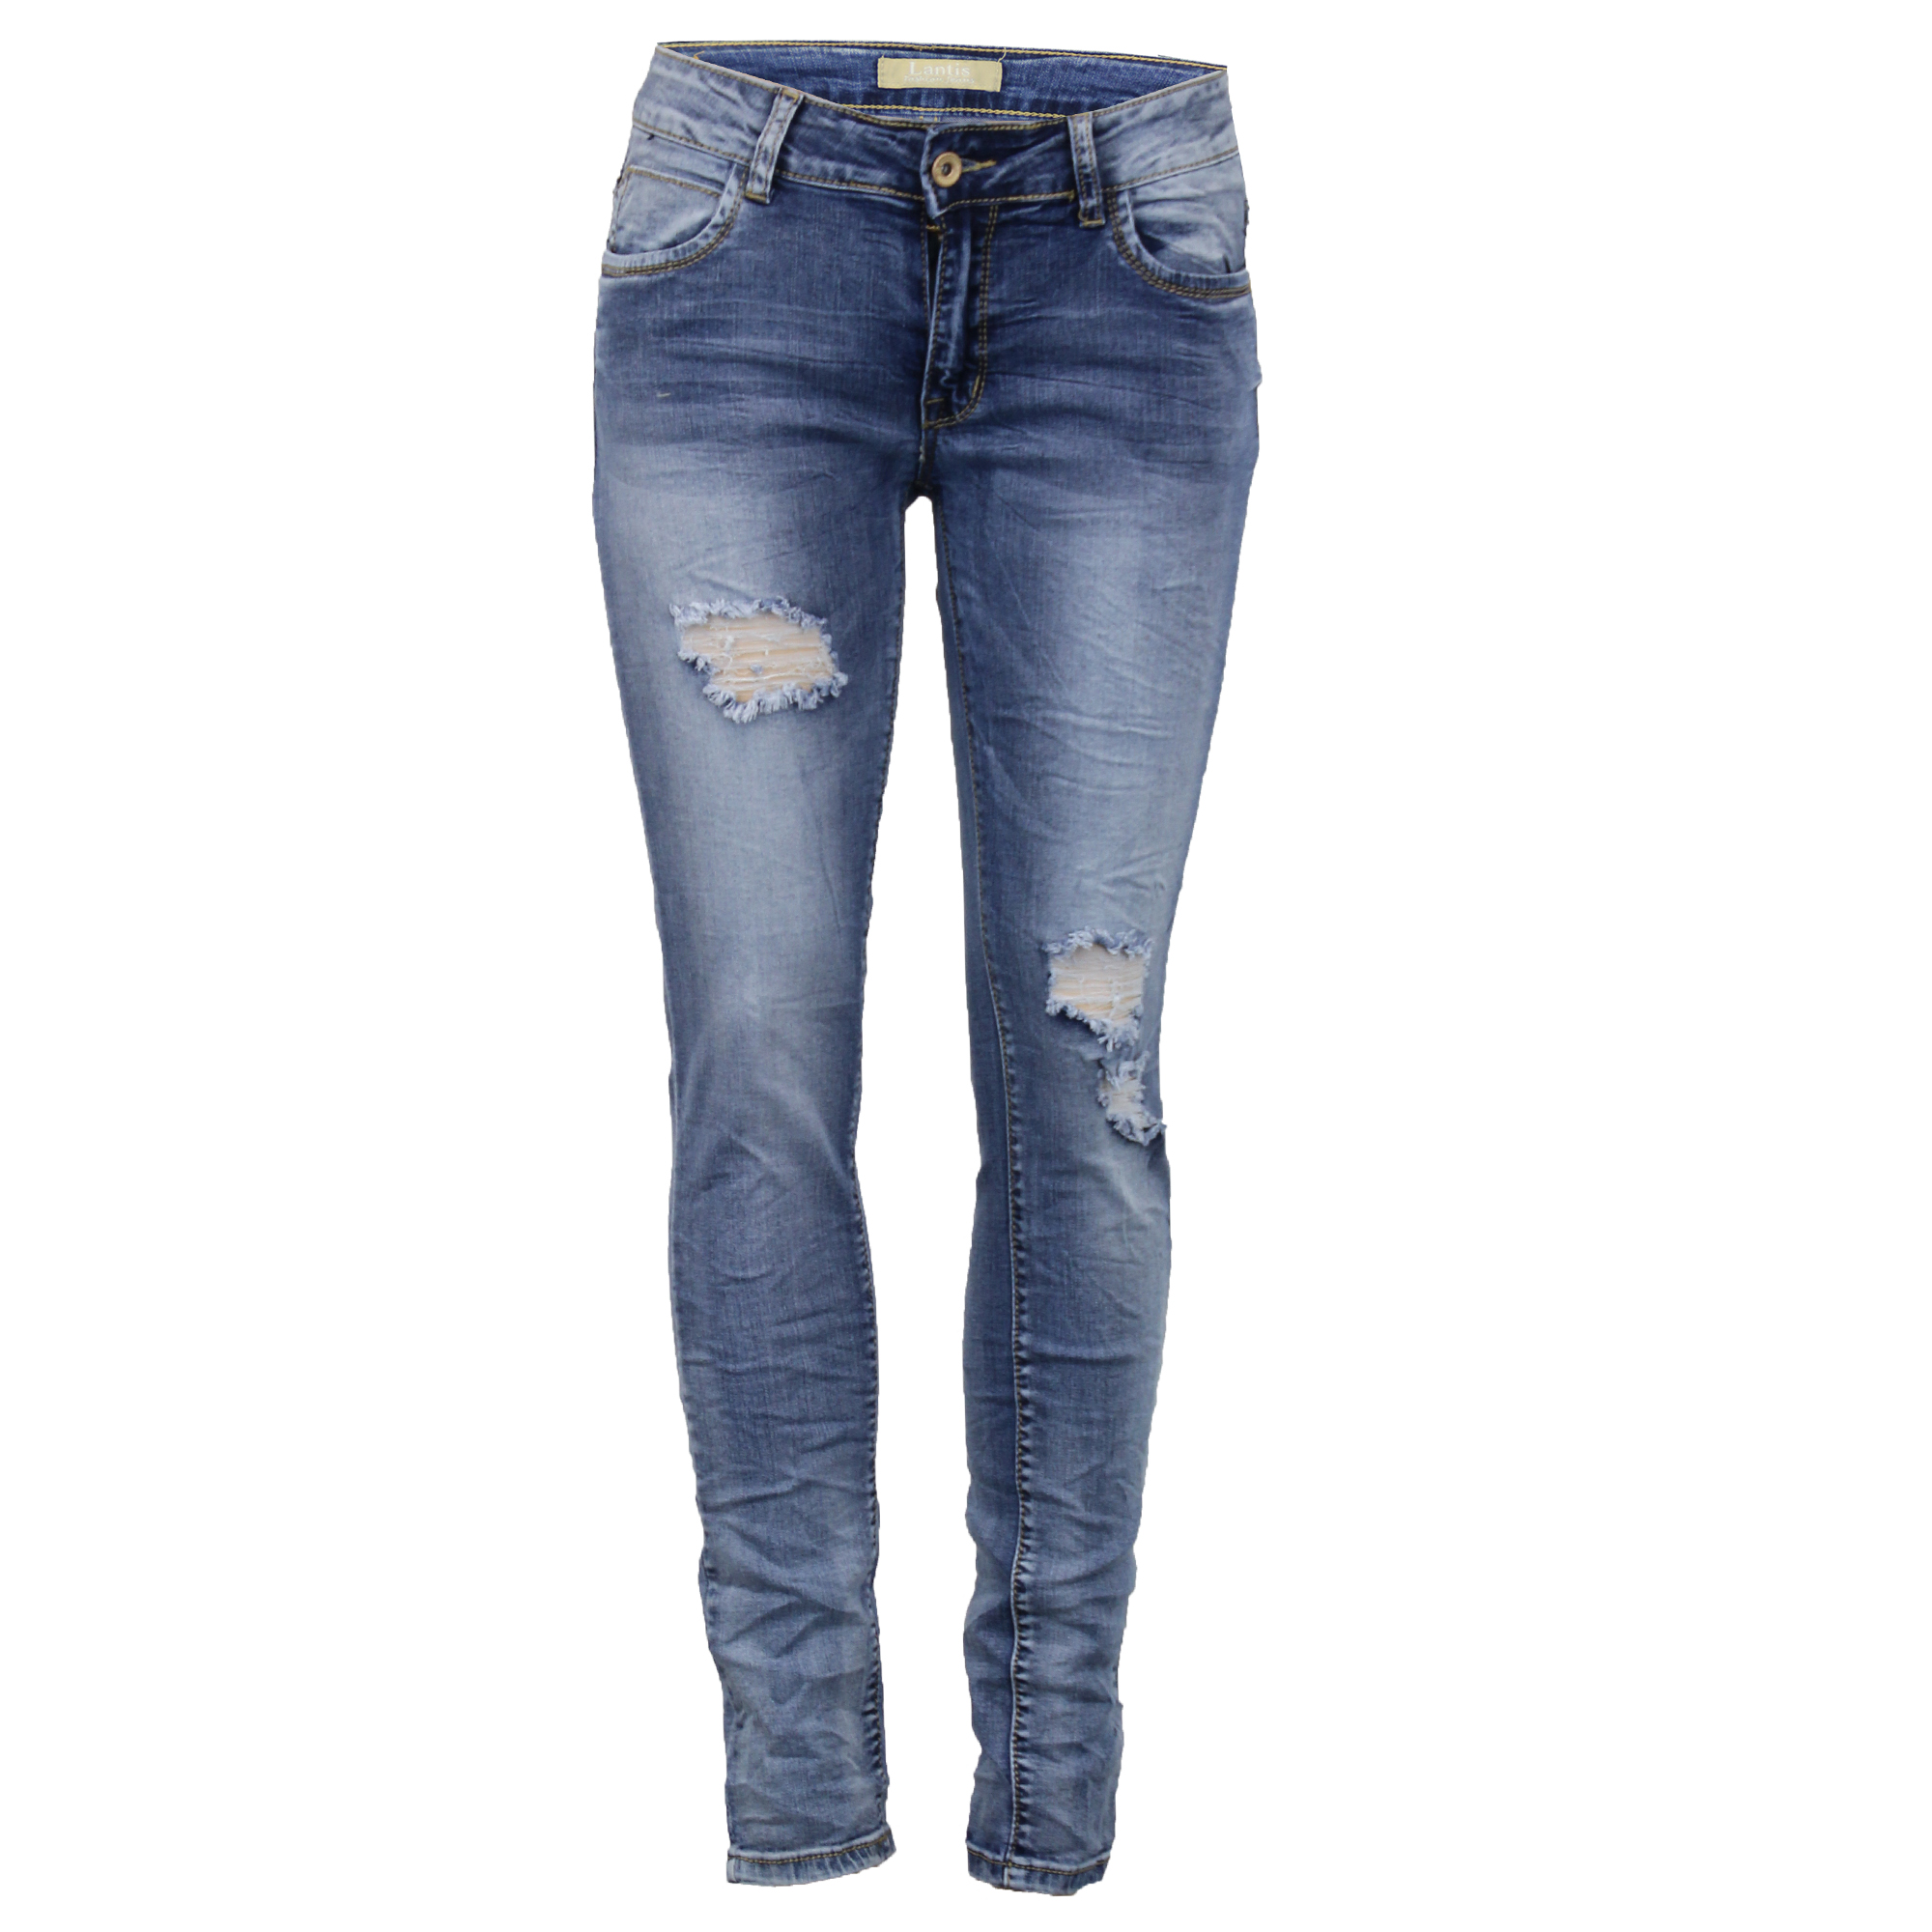 how to buy skinny jeans that fit